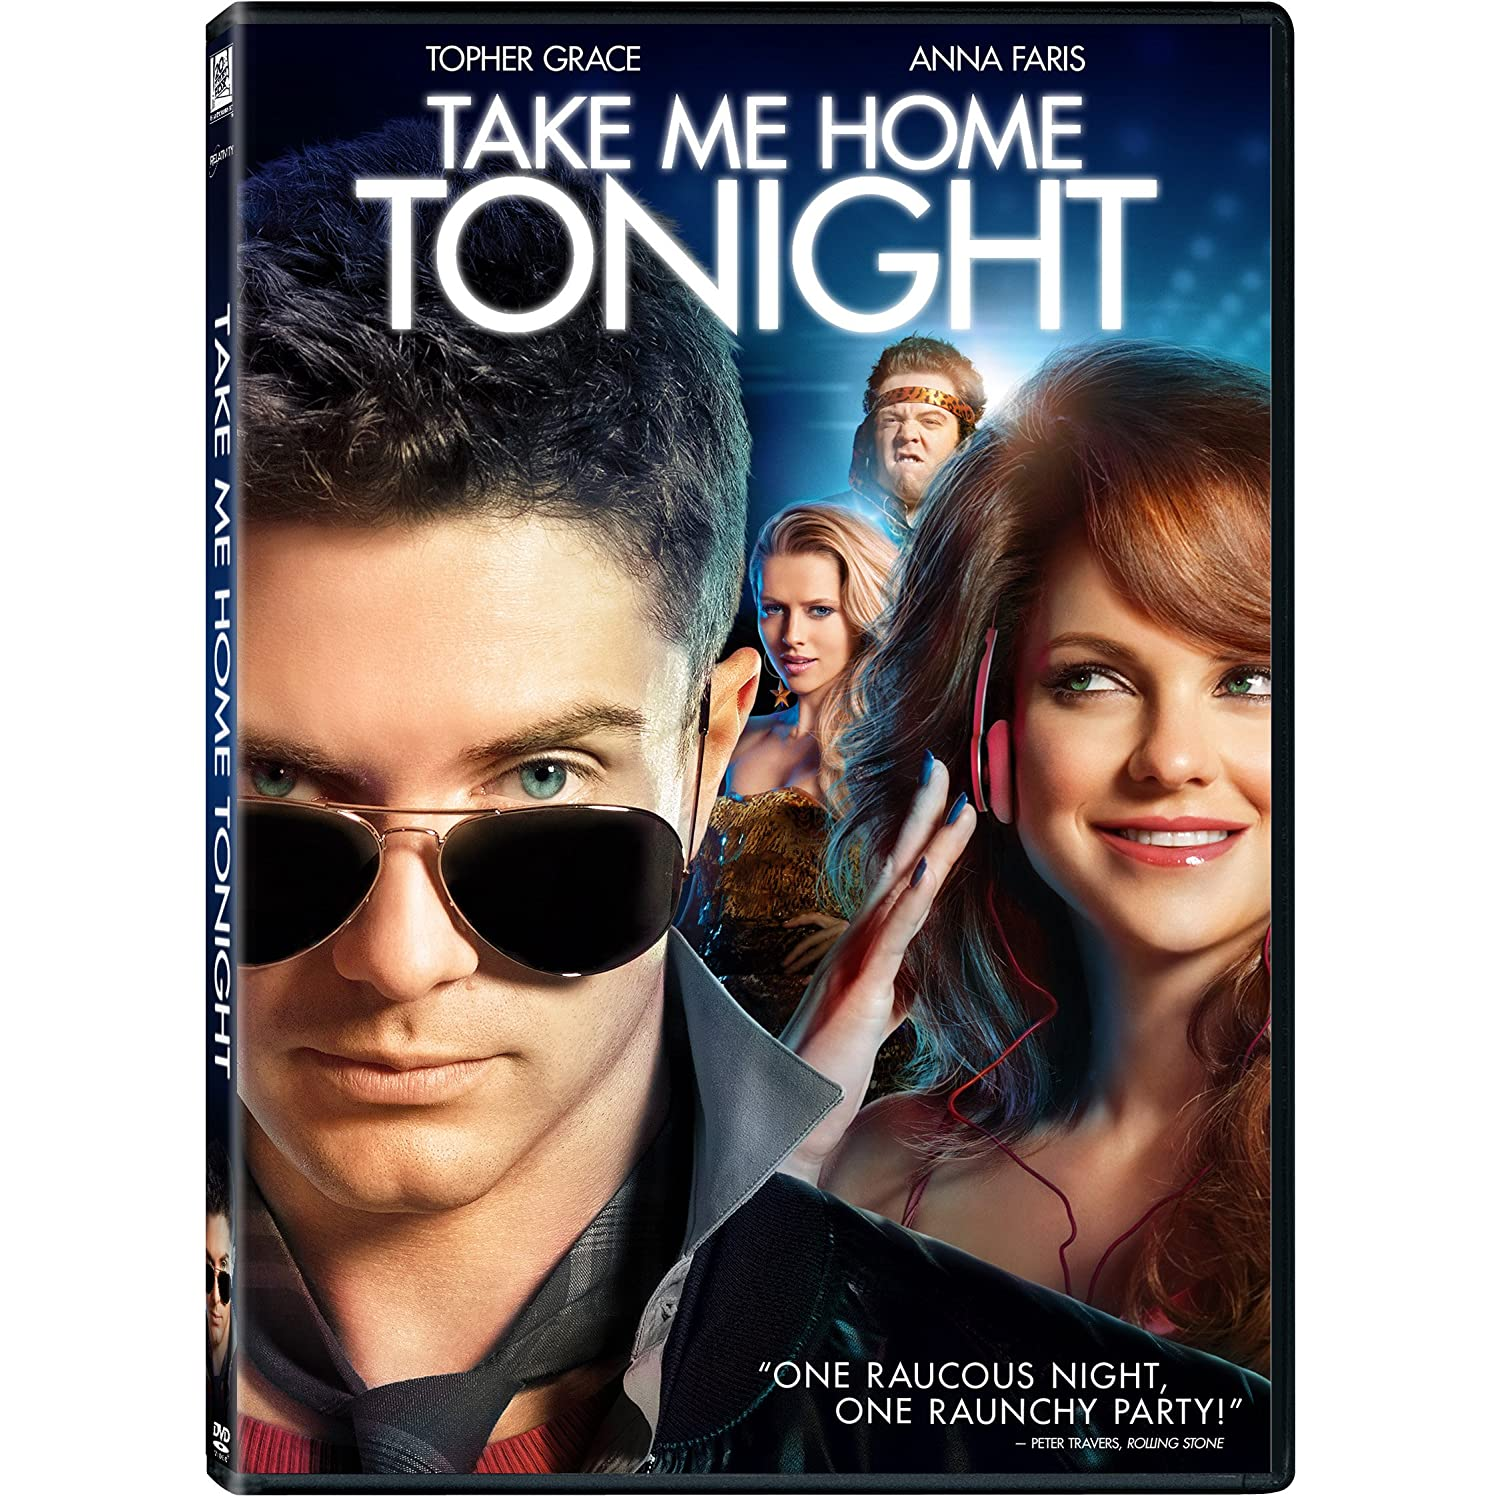 Take Me Home Tonight Reviews